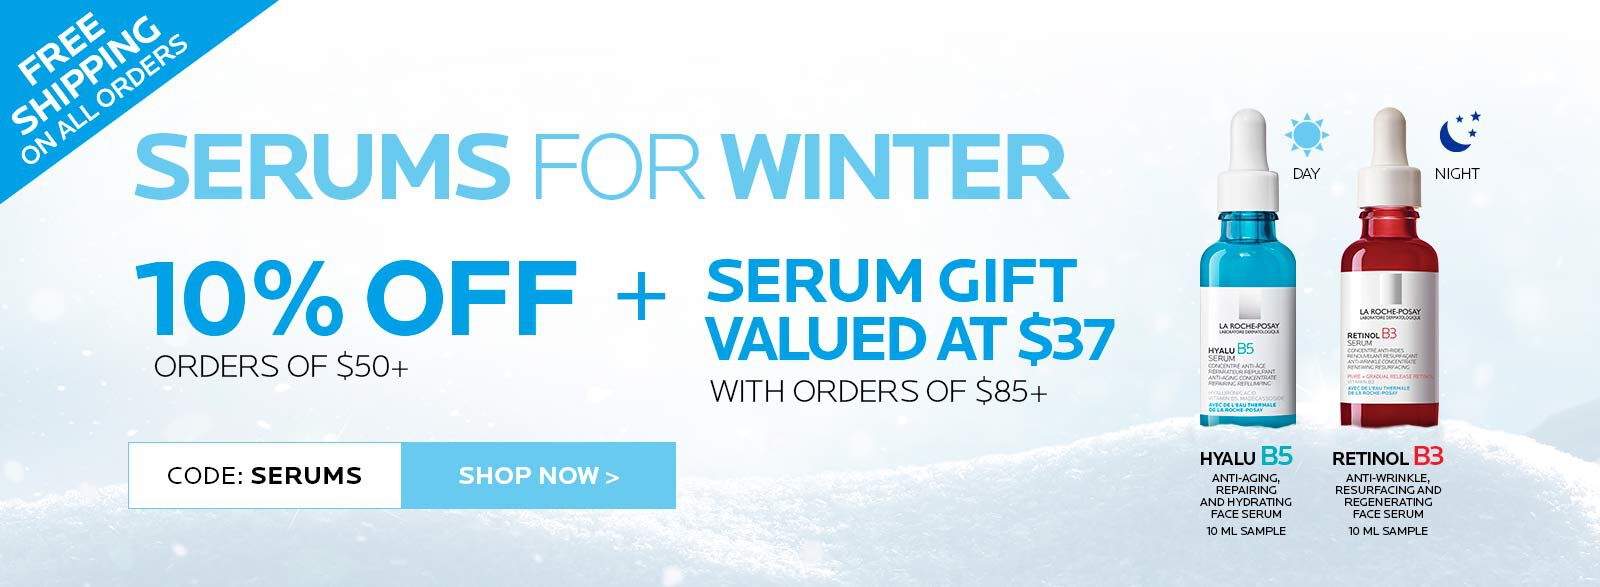 SERUMS FOR WINTER